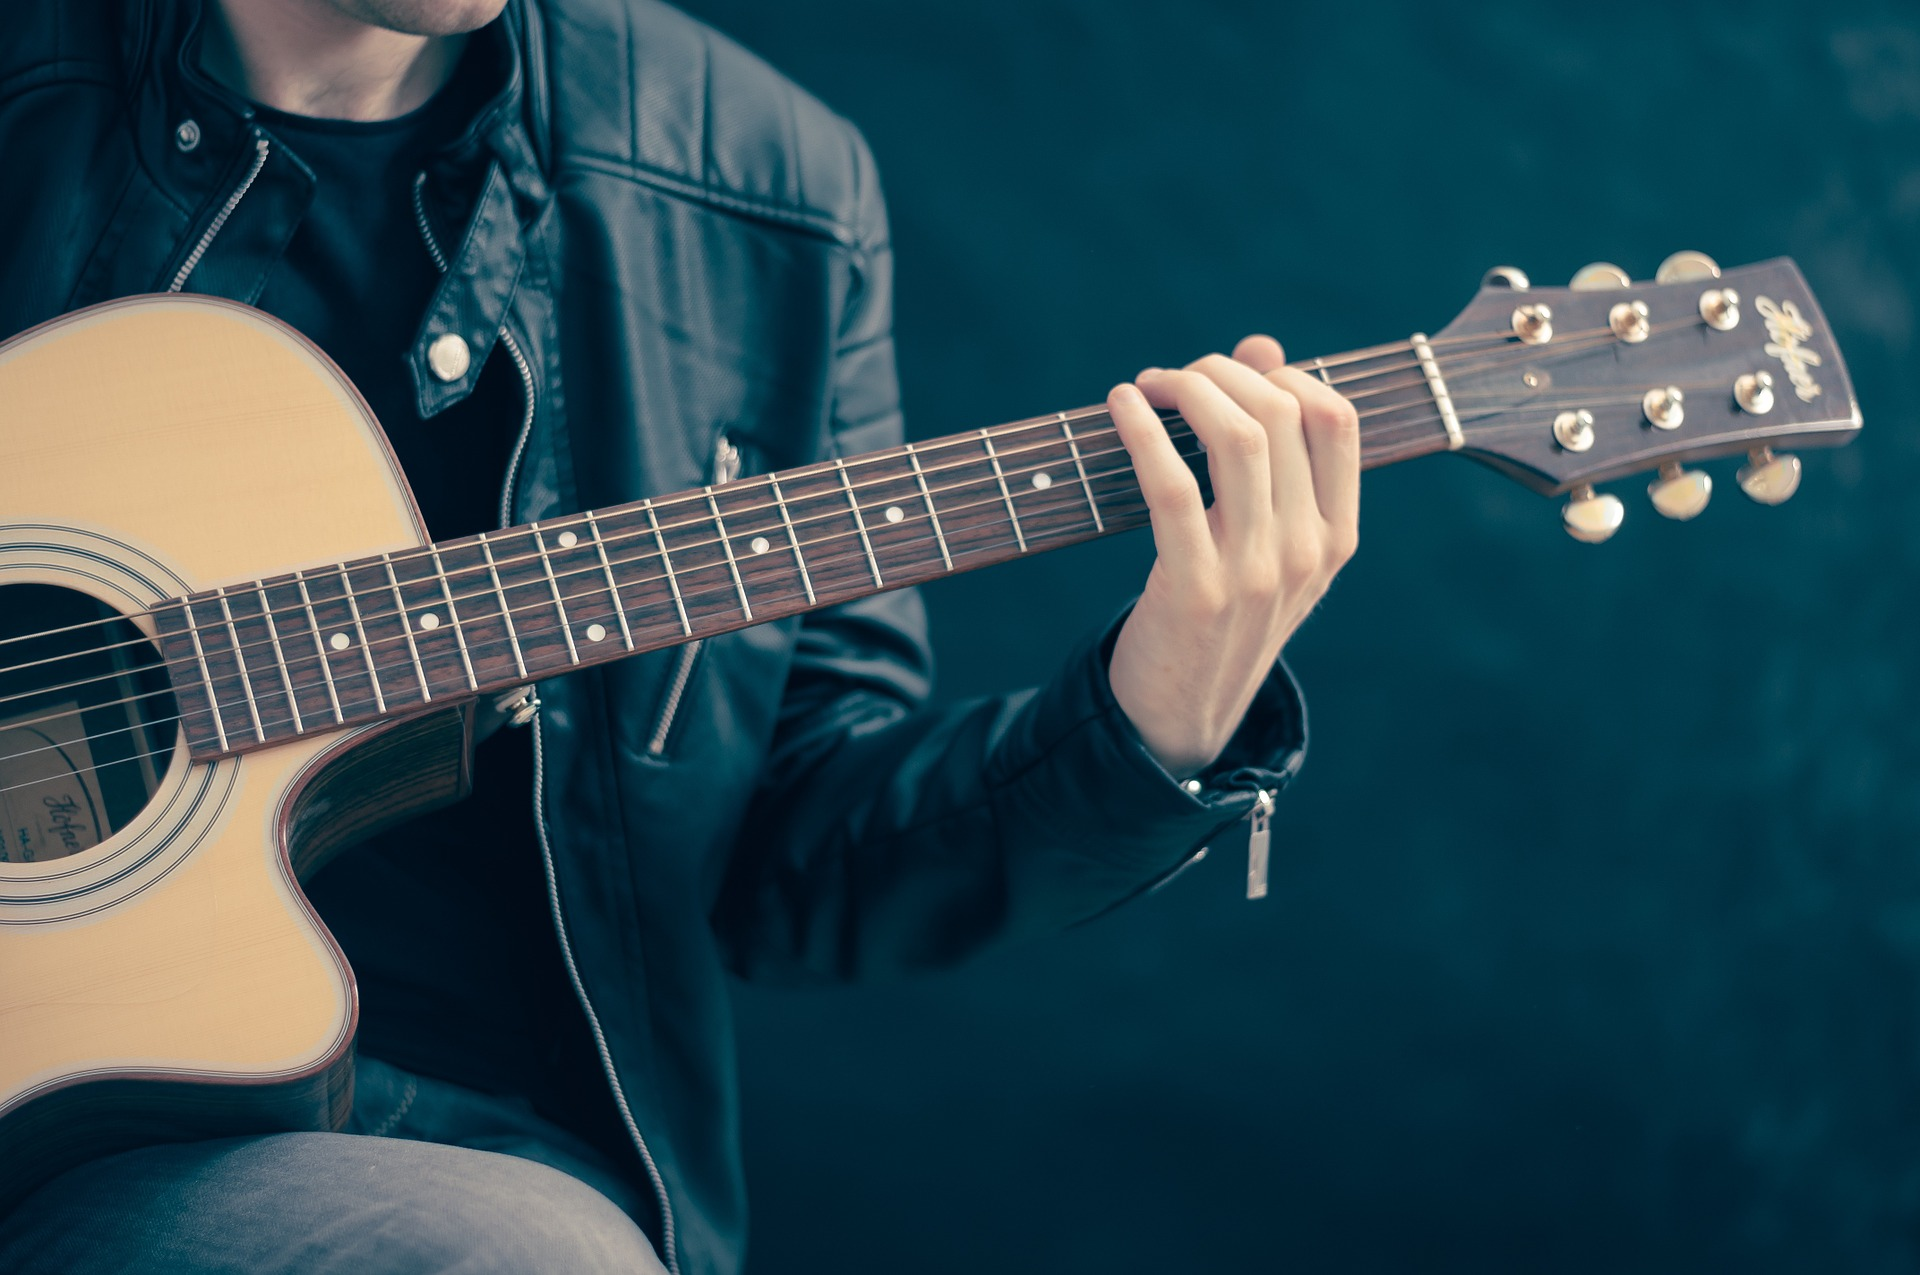 How an arts-based accountant positioned themselves in the music industry. -